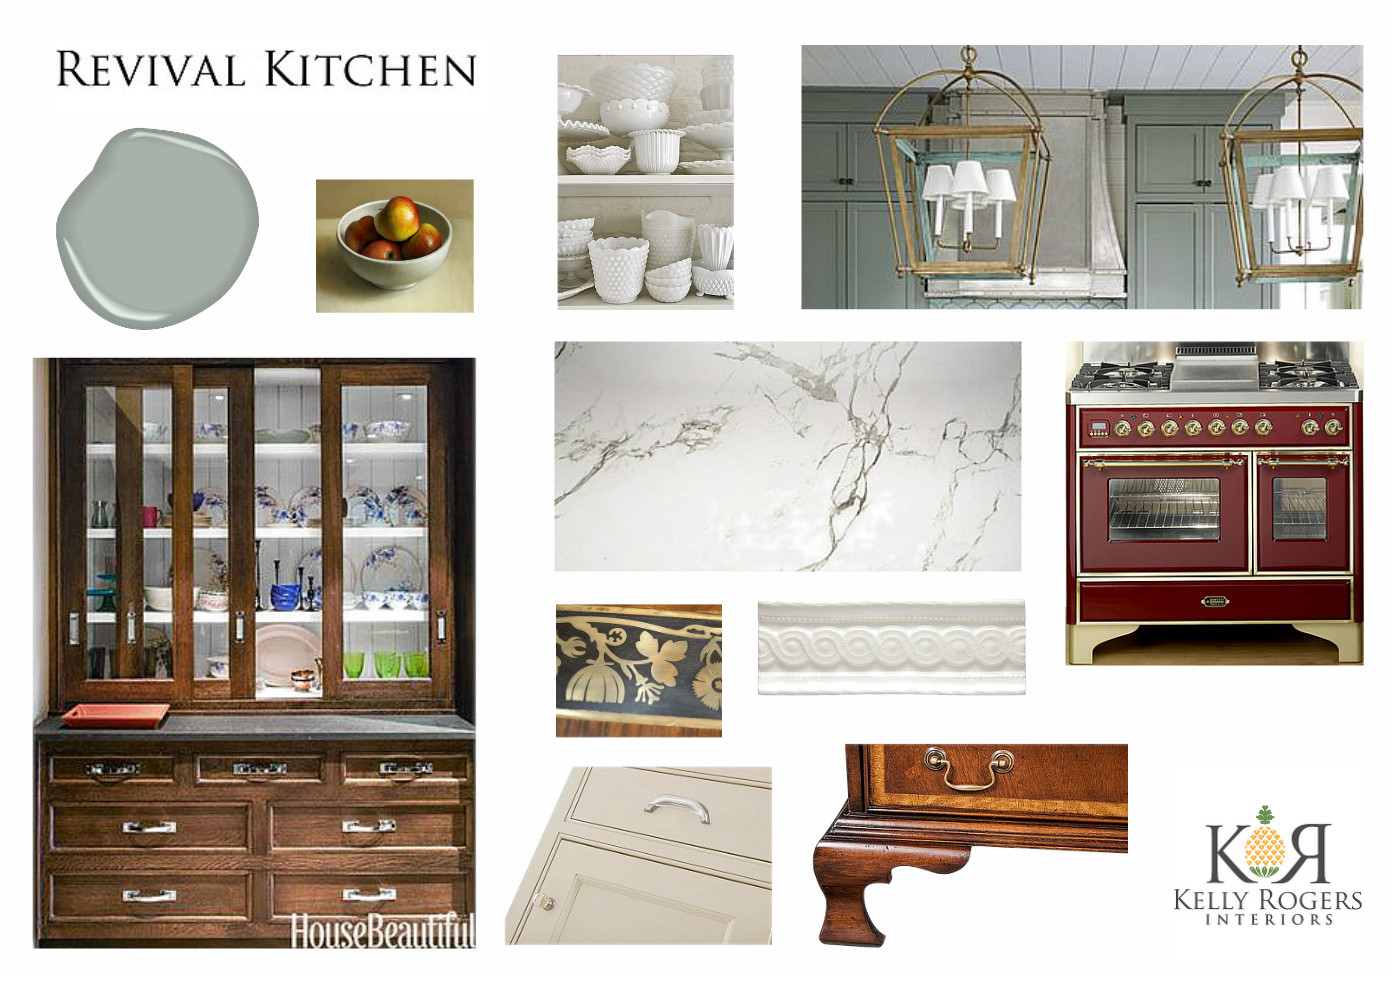 Revival Kitchen | Kelly Rogers Interiors | Interiors for Families